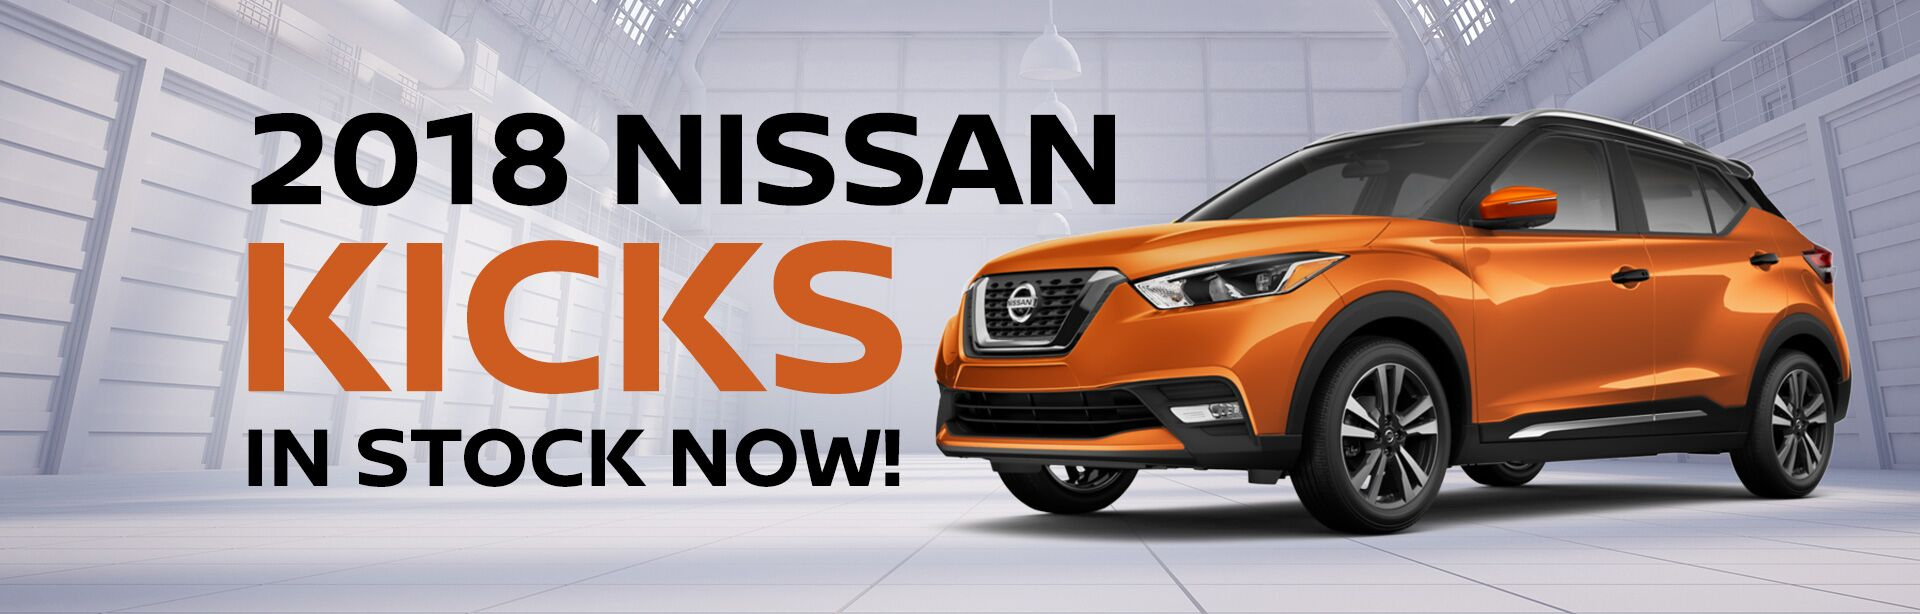 Goodman Nissan New And Used Cars Serving Bowling Green, KY | Goodman Nissan